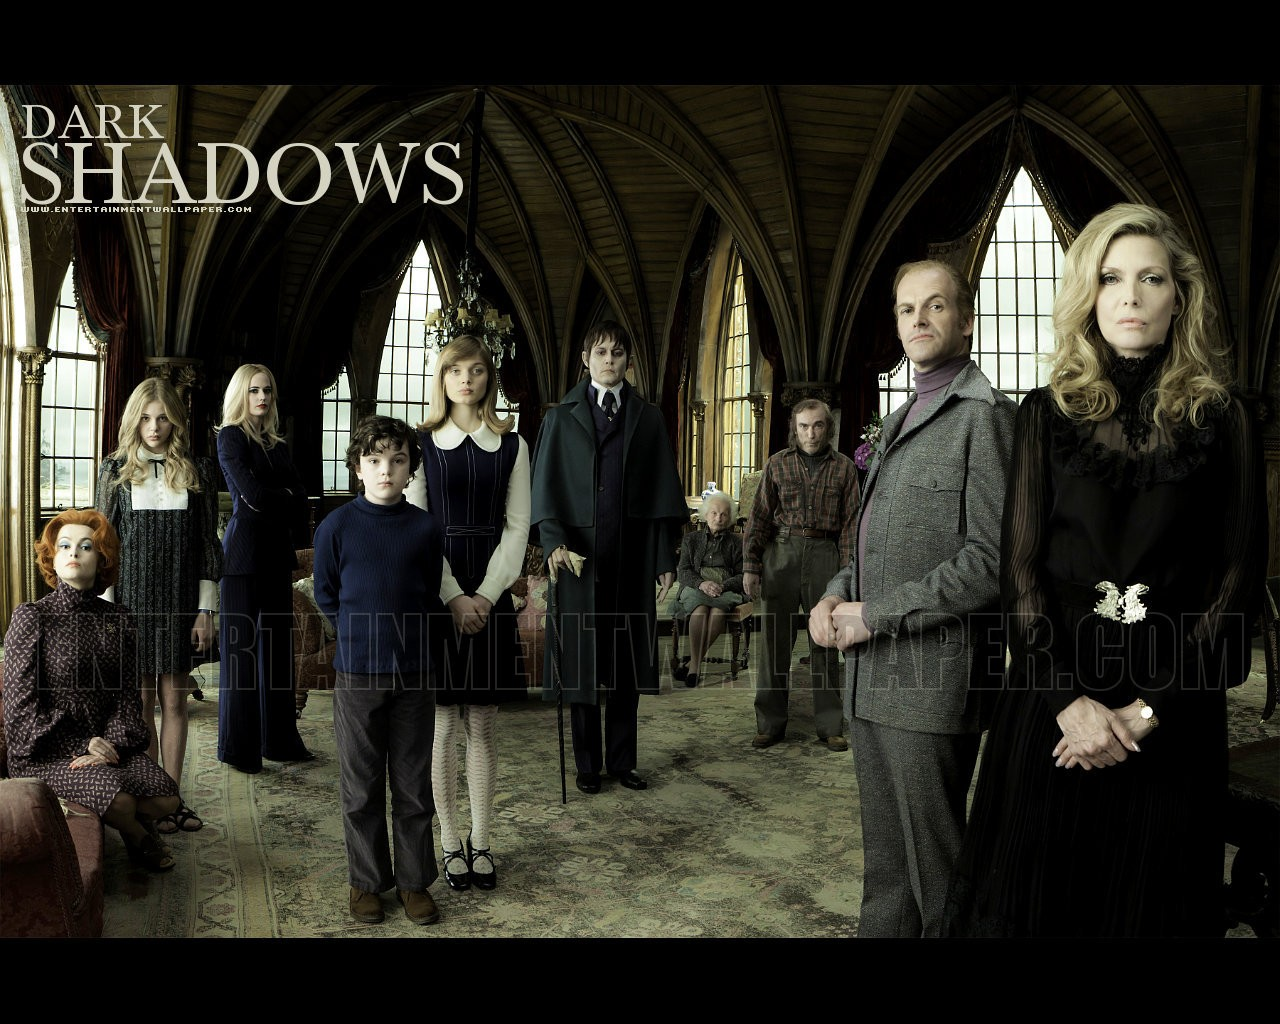 dark shadows wallpaper 10030473 size 1280x1024 more dark shadows 1280x1024